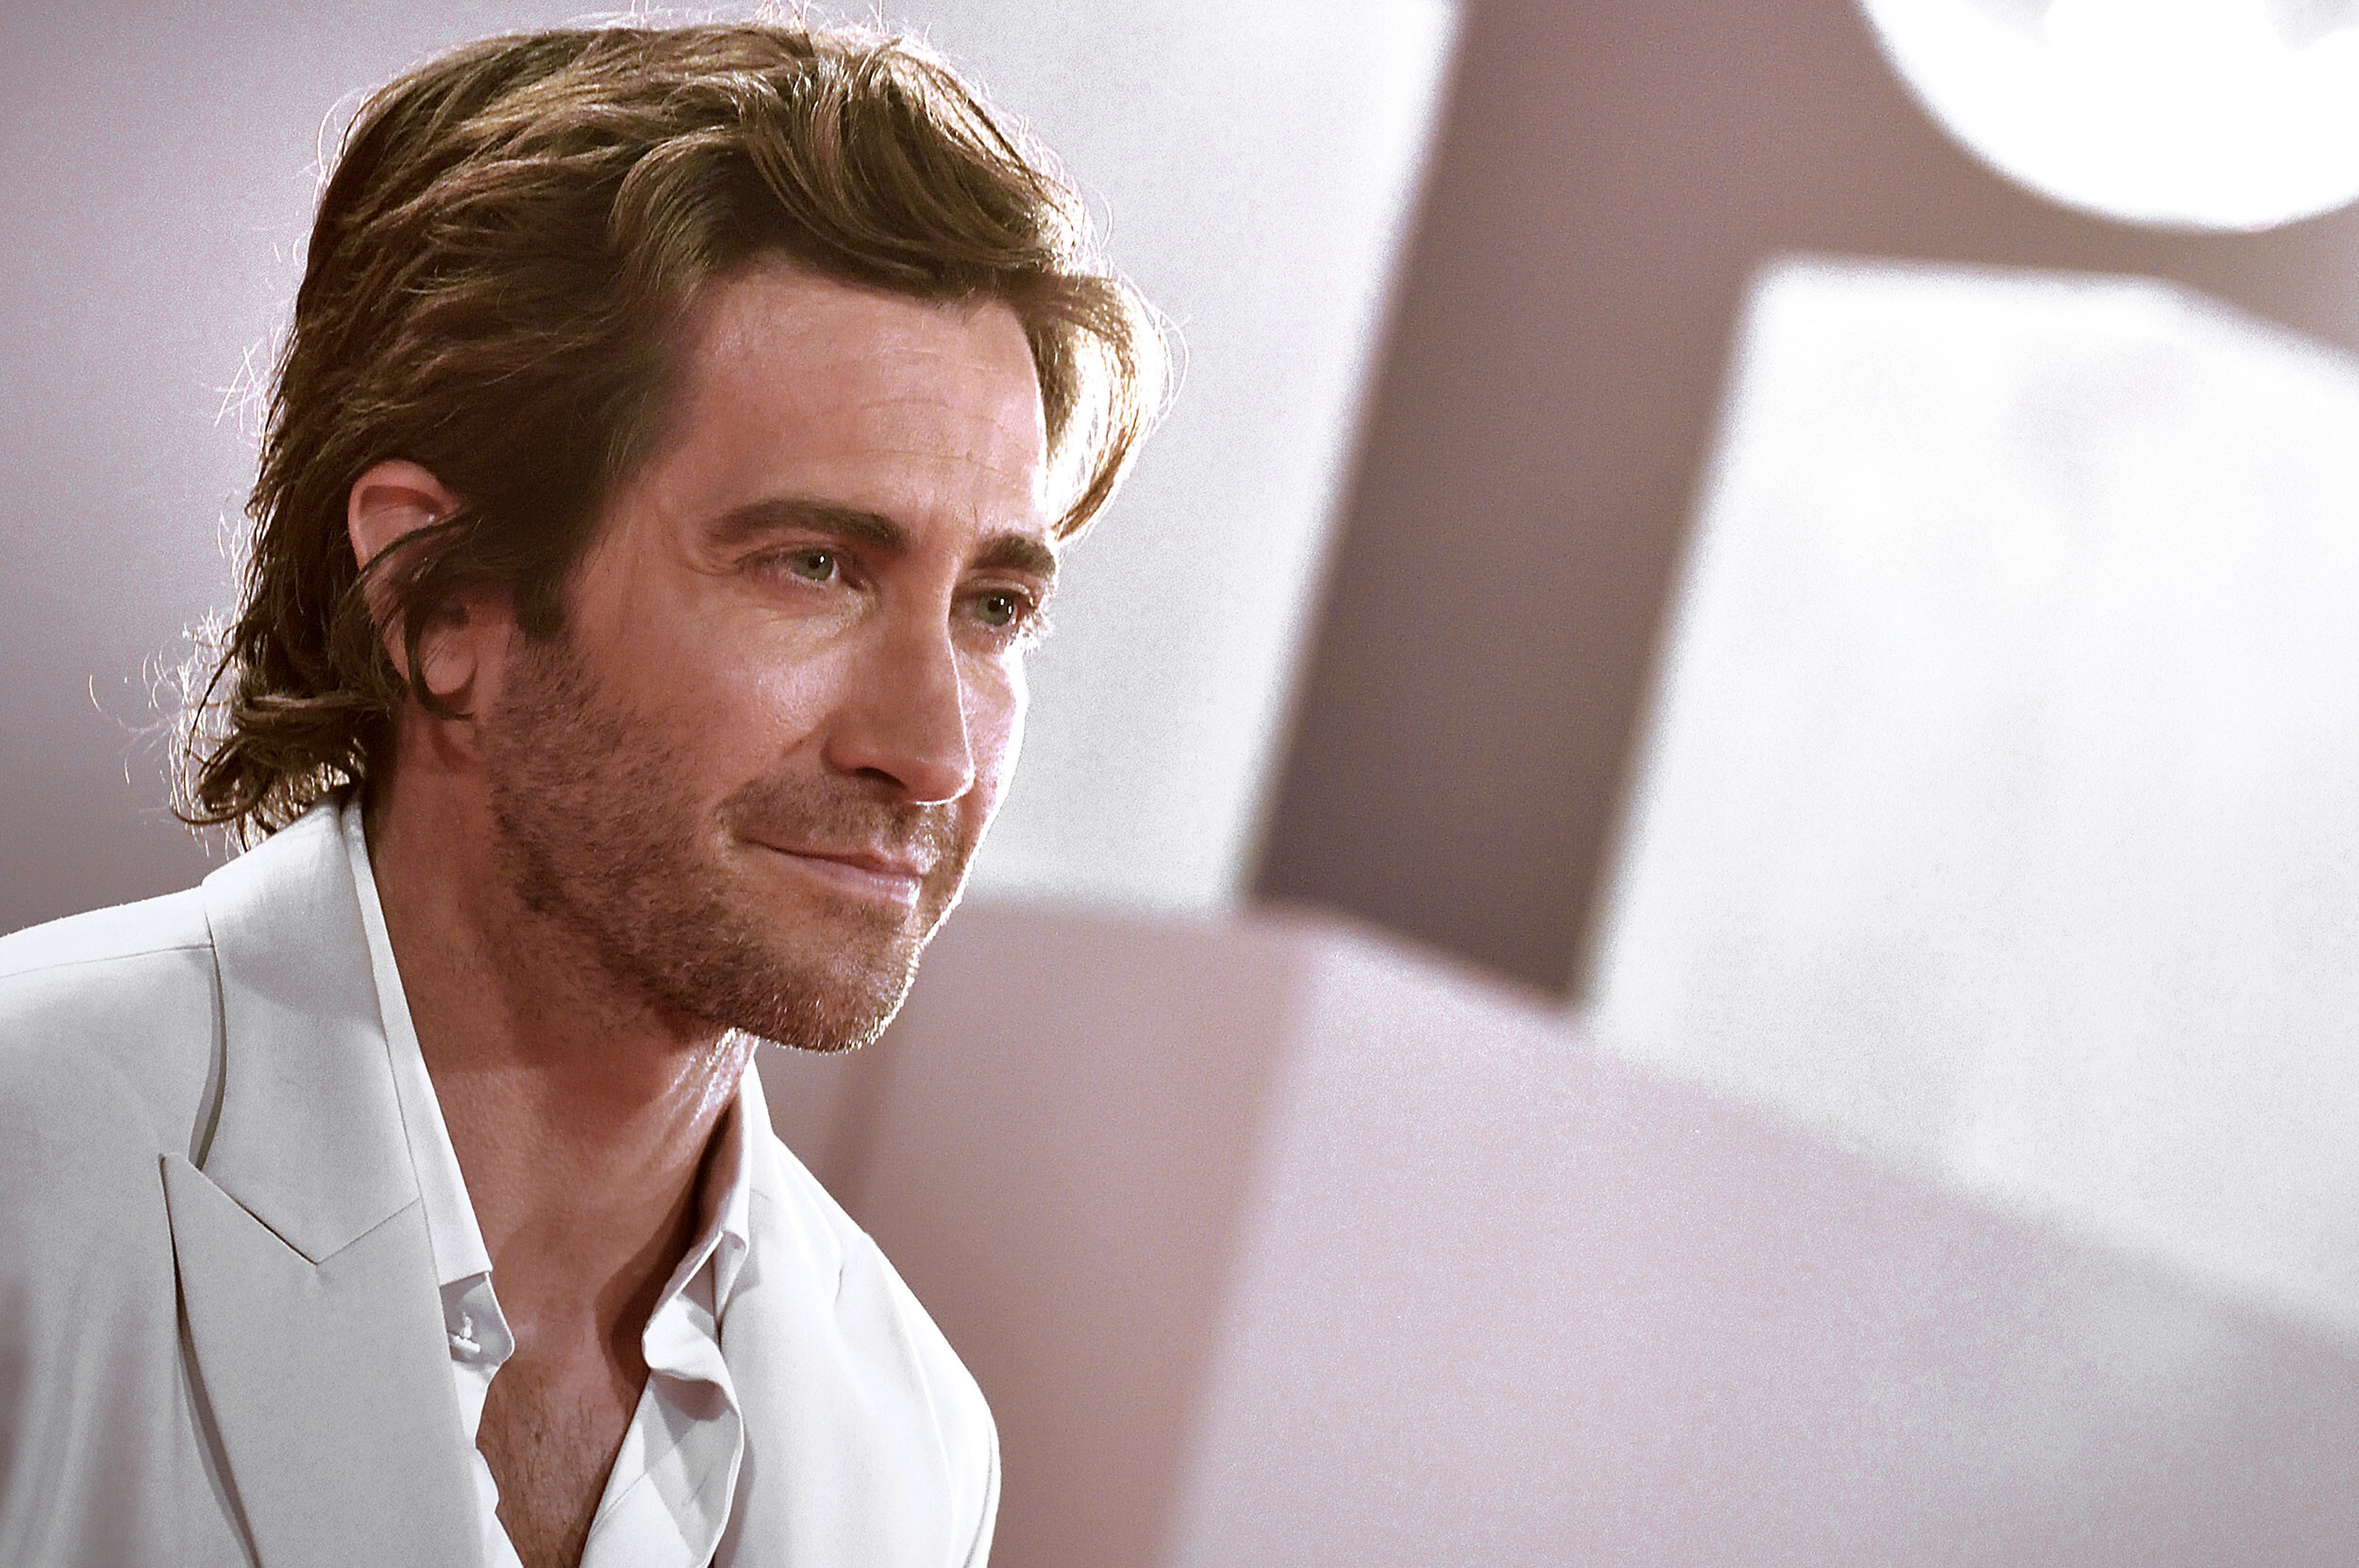 Jake Gyllenhaal is ready to be a family man